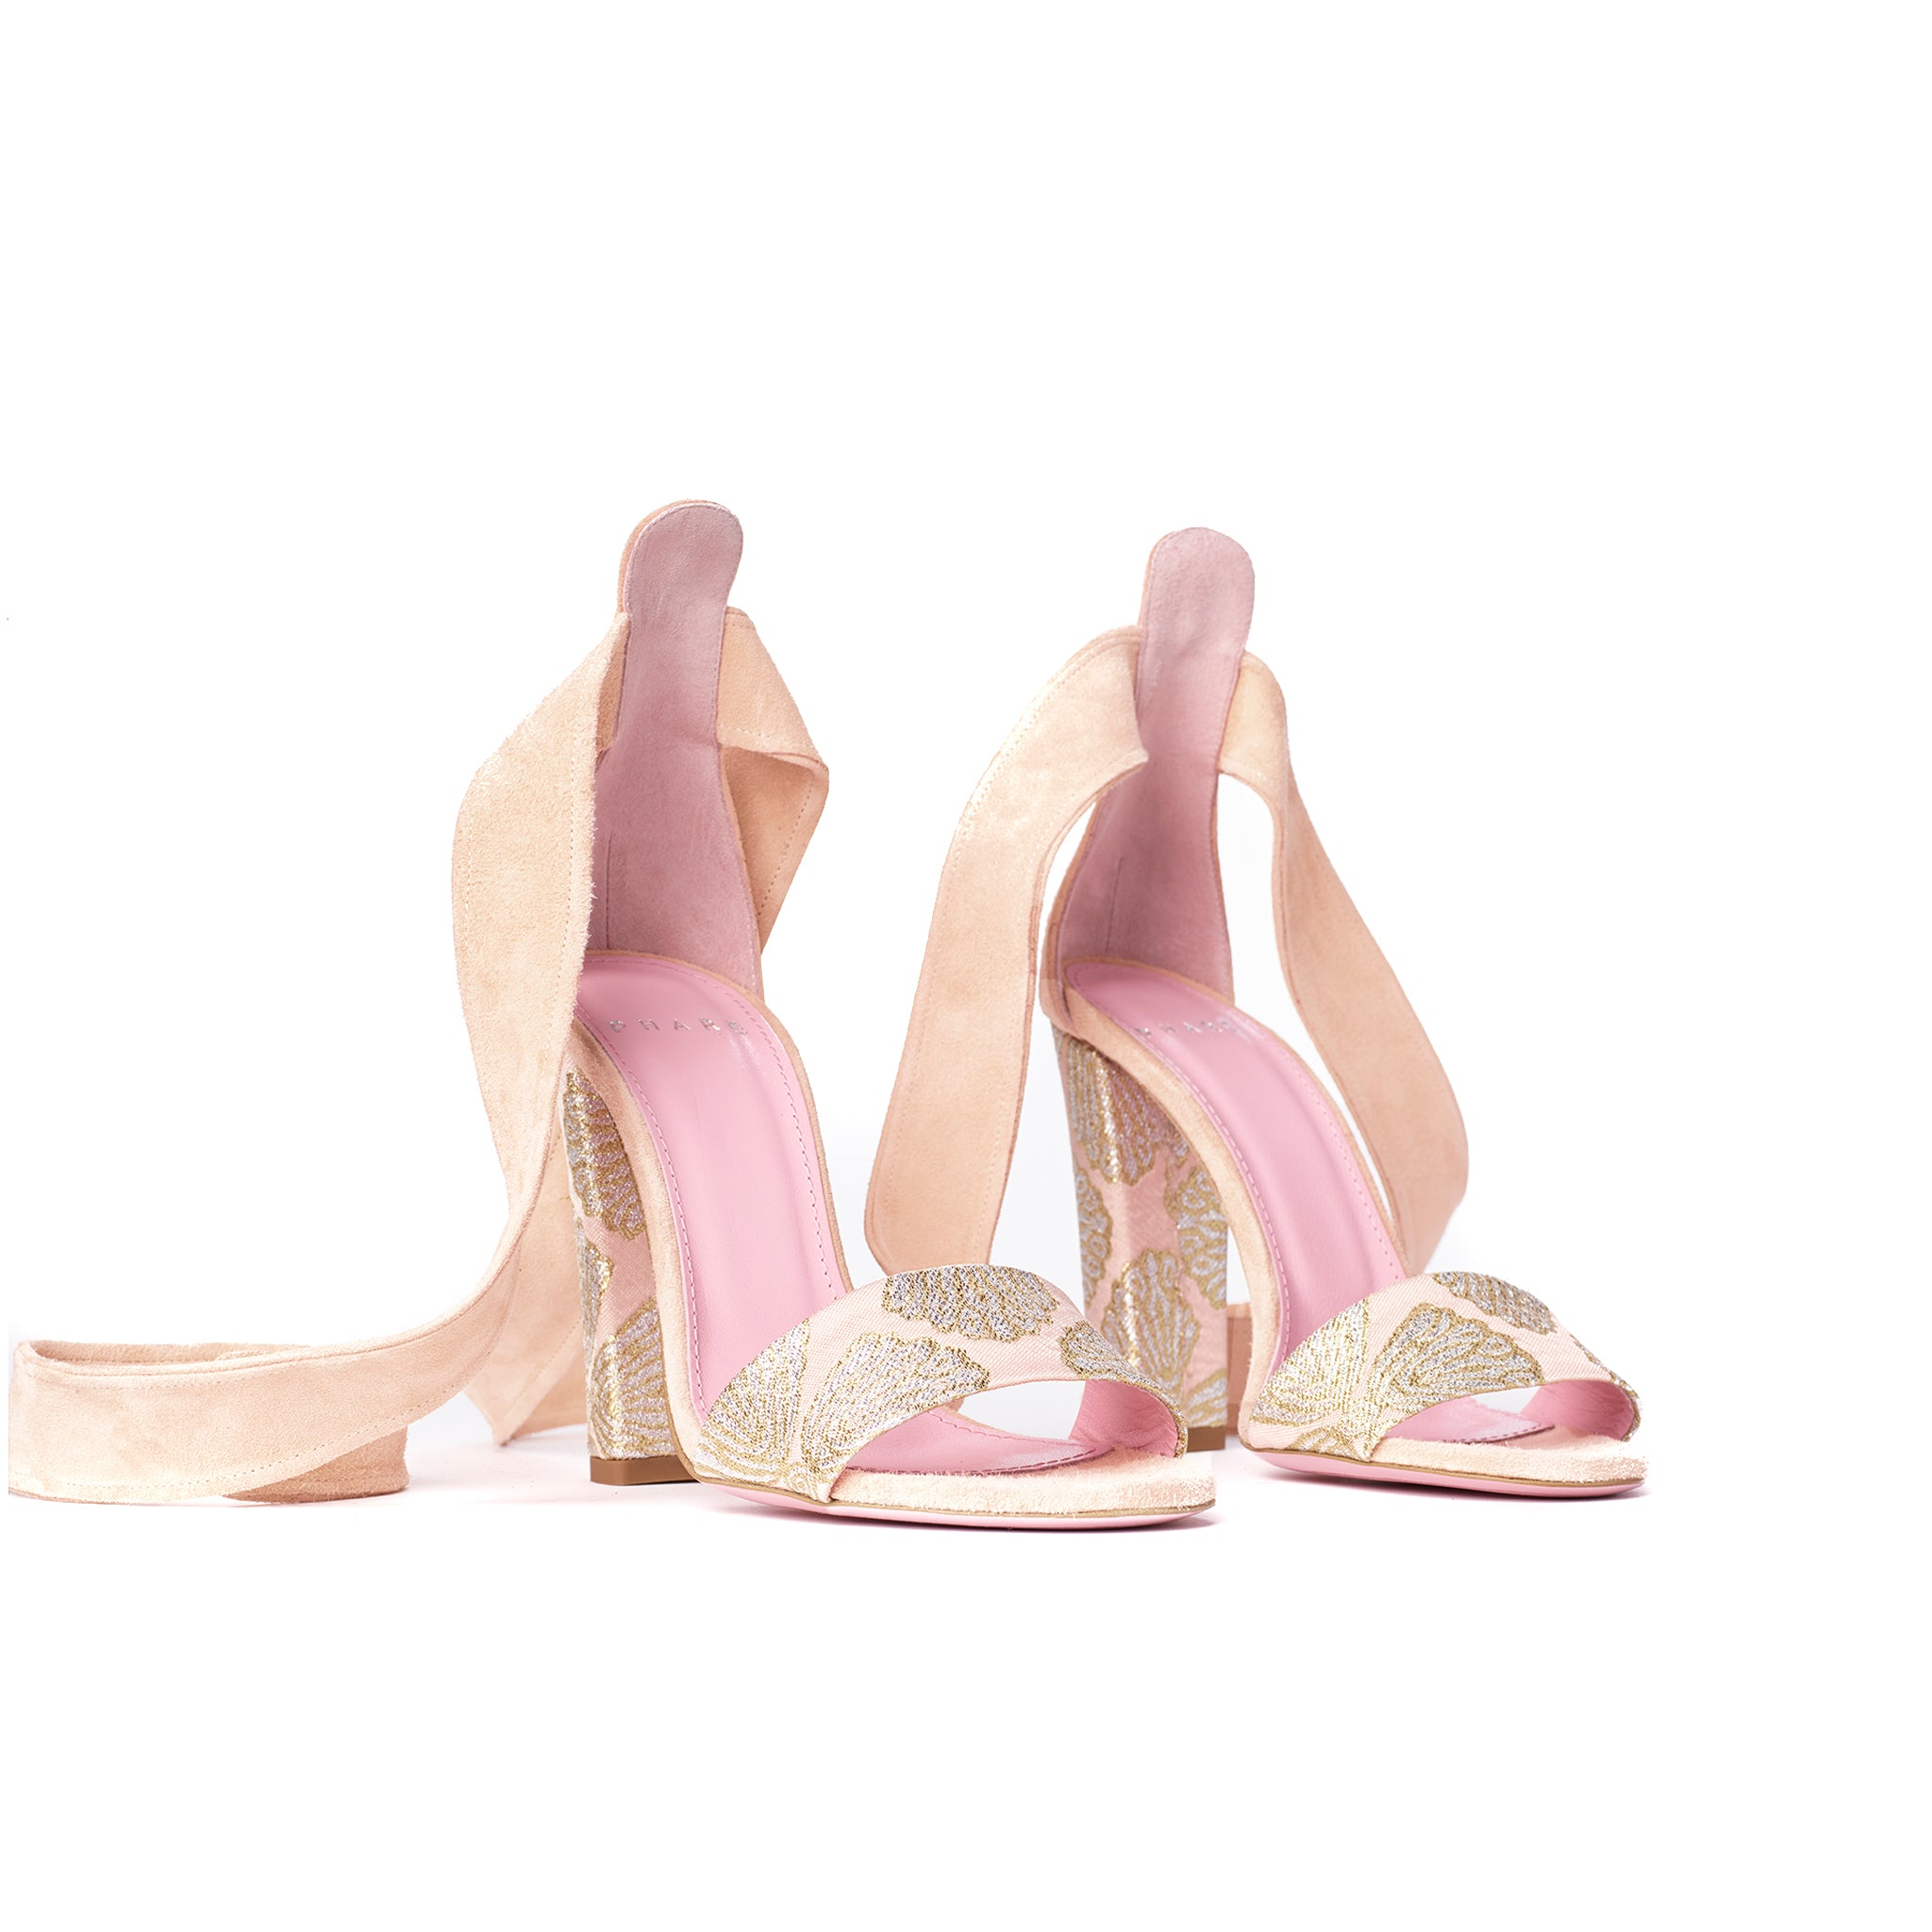 Phare Ankle tie block heel with metallic brocade heel and soft peach suede 3/4 view